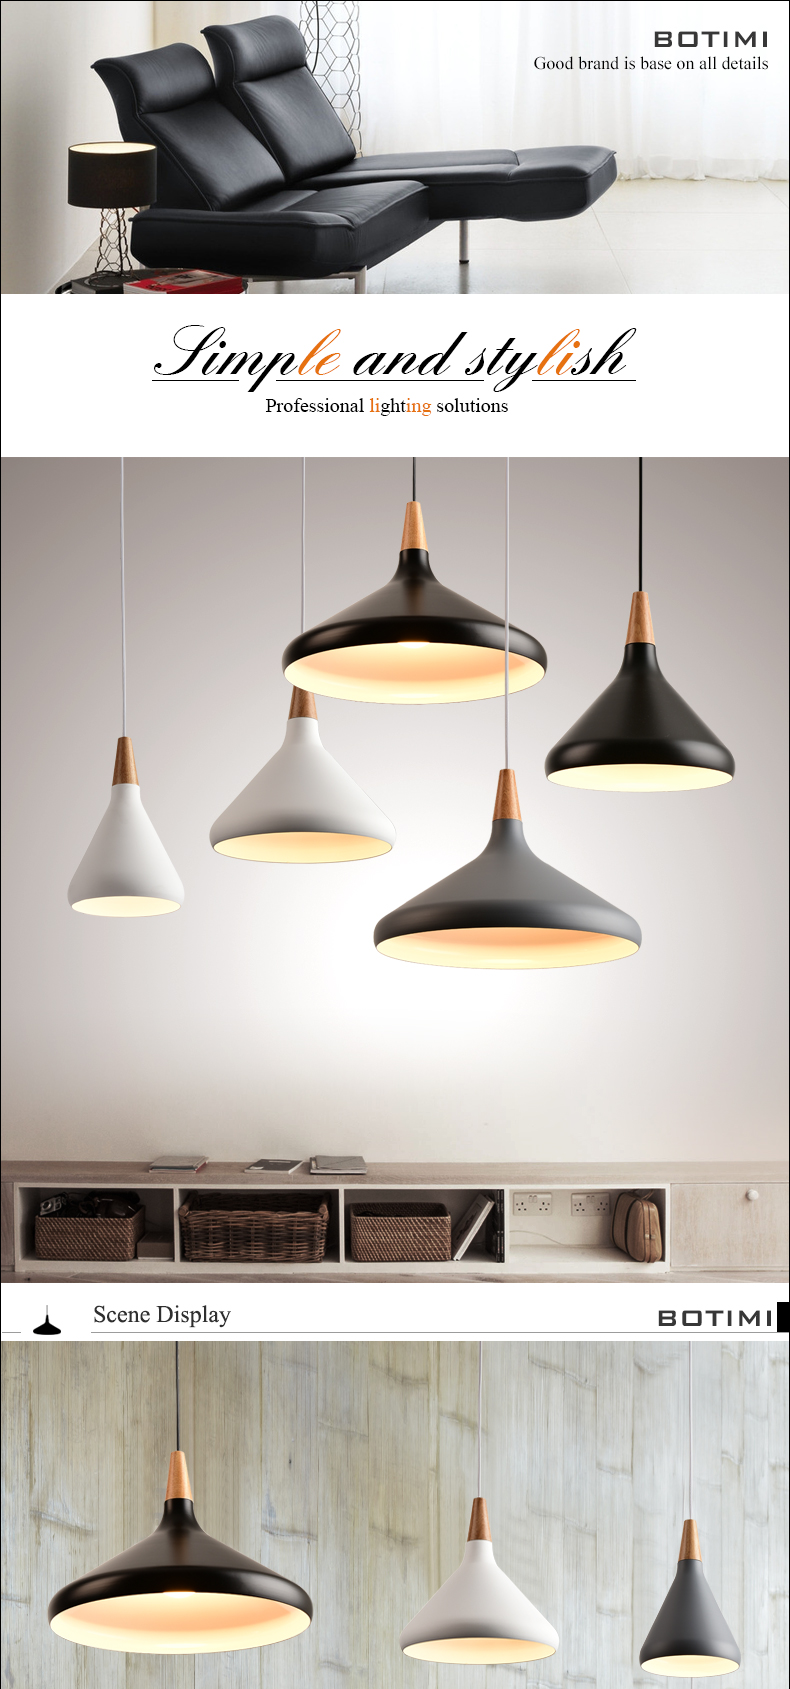 BOTIMI Nordic Retro Pendant Lights For Dining Kitchen Lampadario Vintage Metal Hanging Lamp Indoor Luminaria Light Fixtures